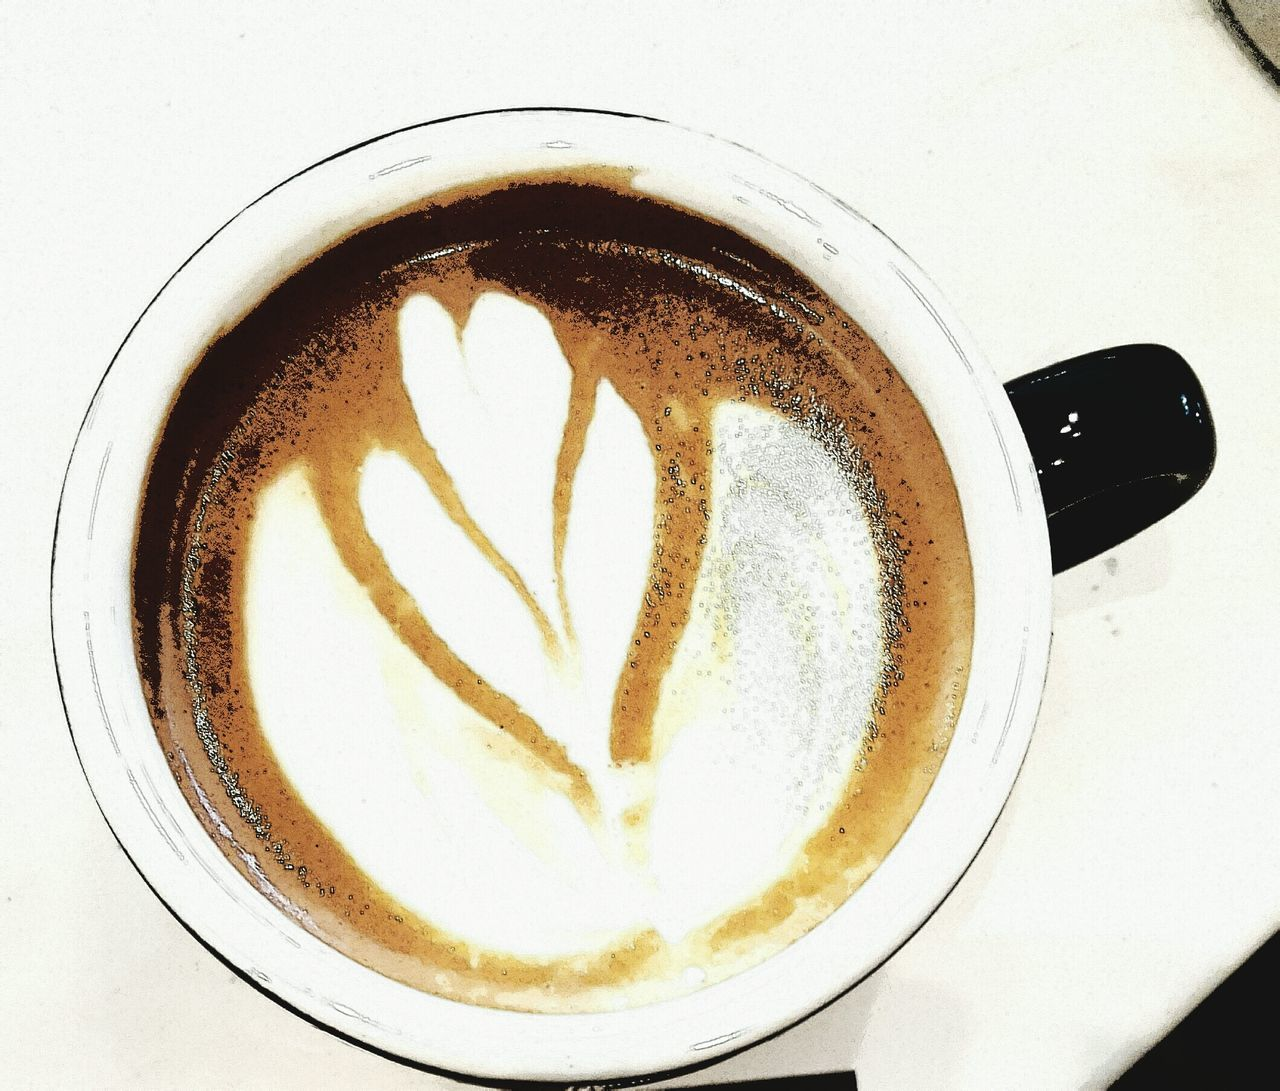 coffee - drink, drink, coffee cup, refreshment, frothy drink, food and drink, cappuccino, froth art, cup, latte, saucer, heart shape, freshness, directly above, close-up, indoors, no people, table, high angle view, healthy eating, day